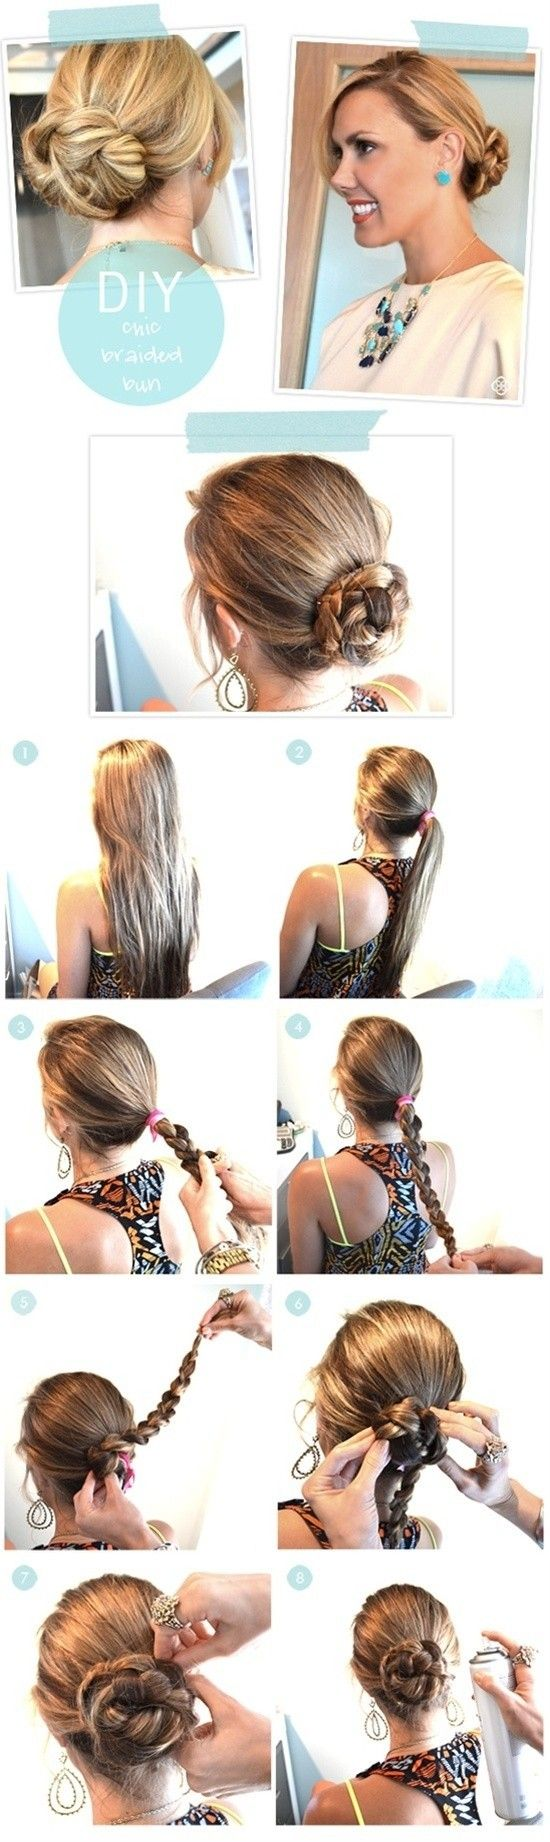 hairstyles for long hair step by step instructions for braids